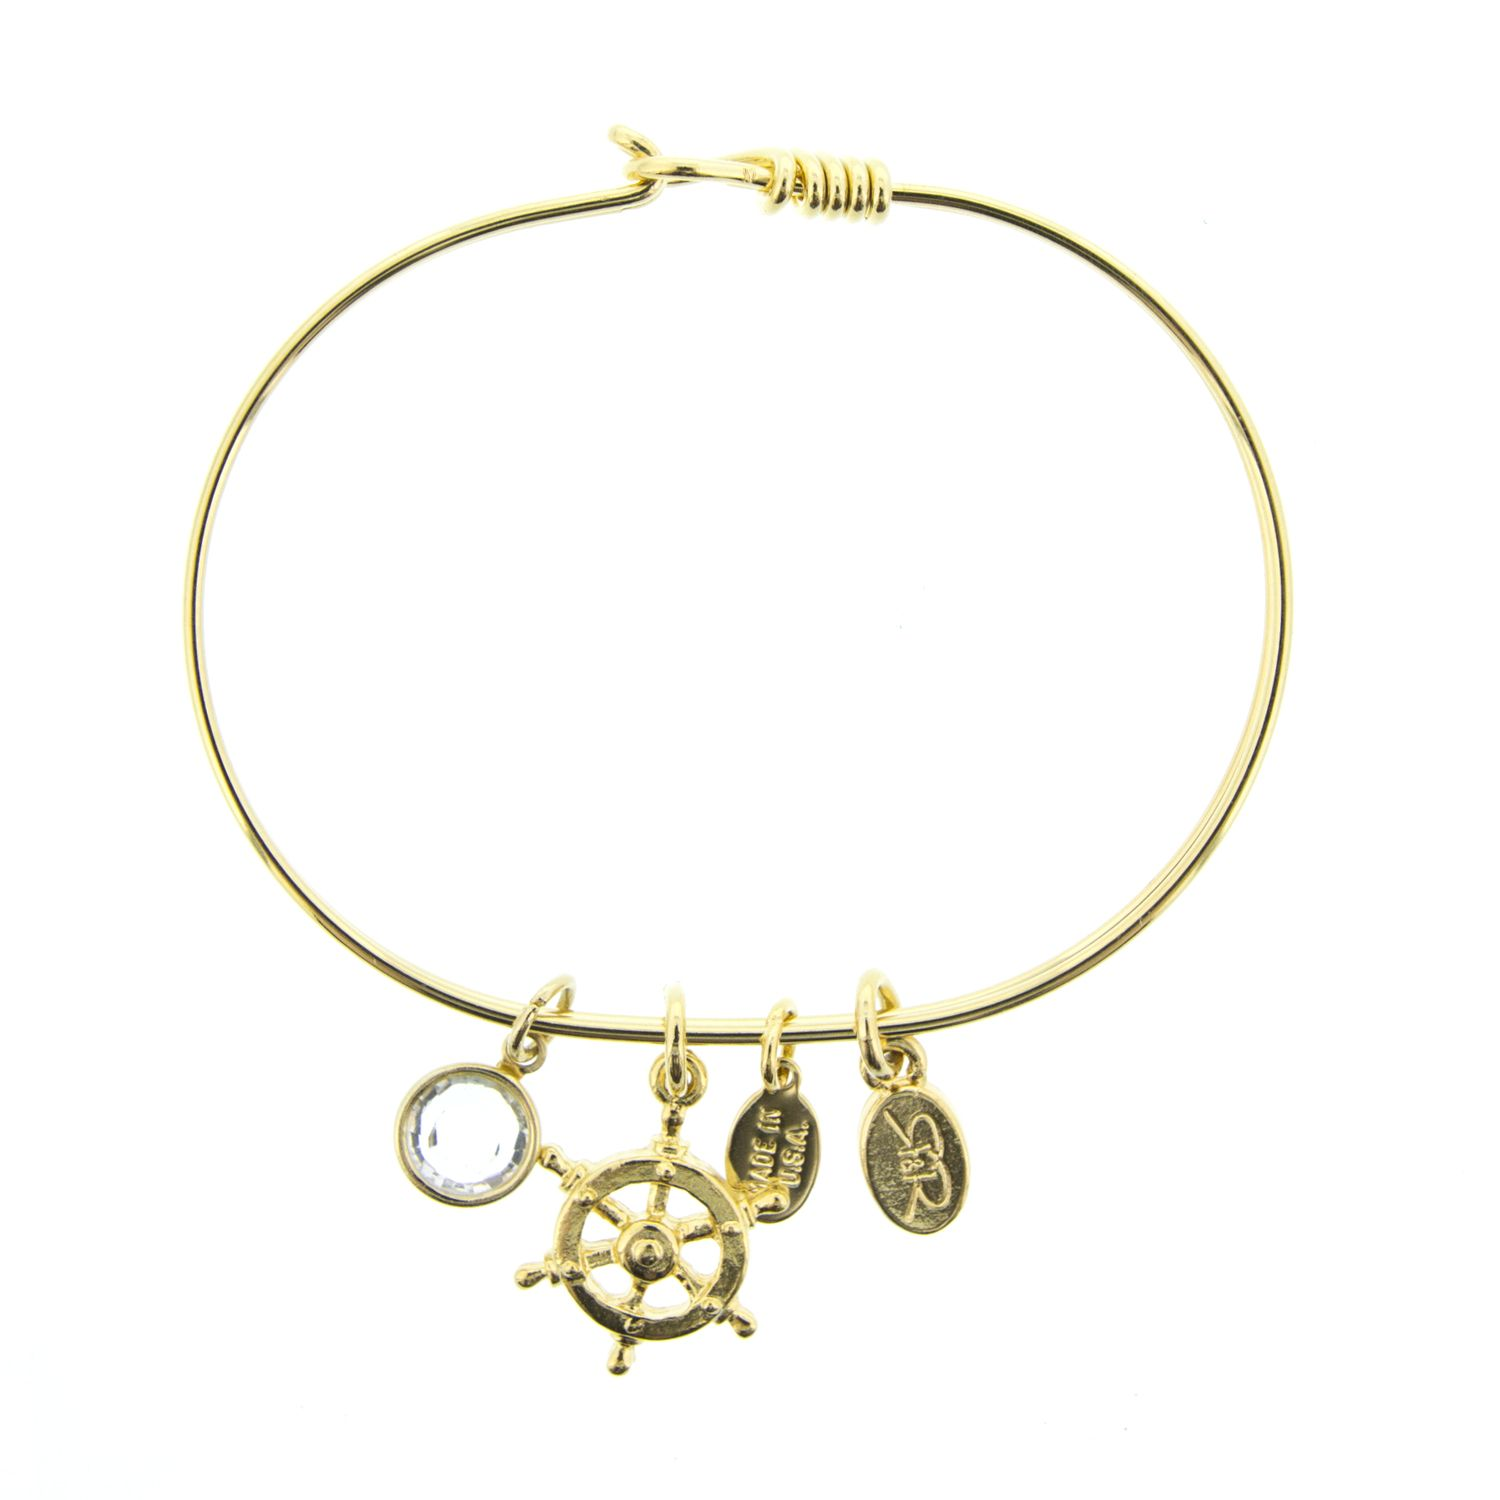 Gold ships wheel bracelet with swarovski crystal by reese and rose